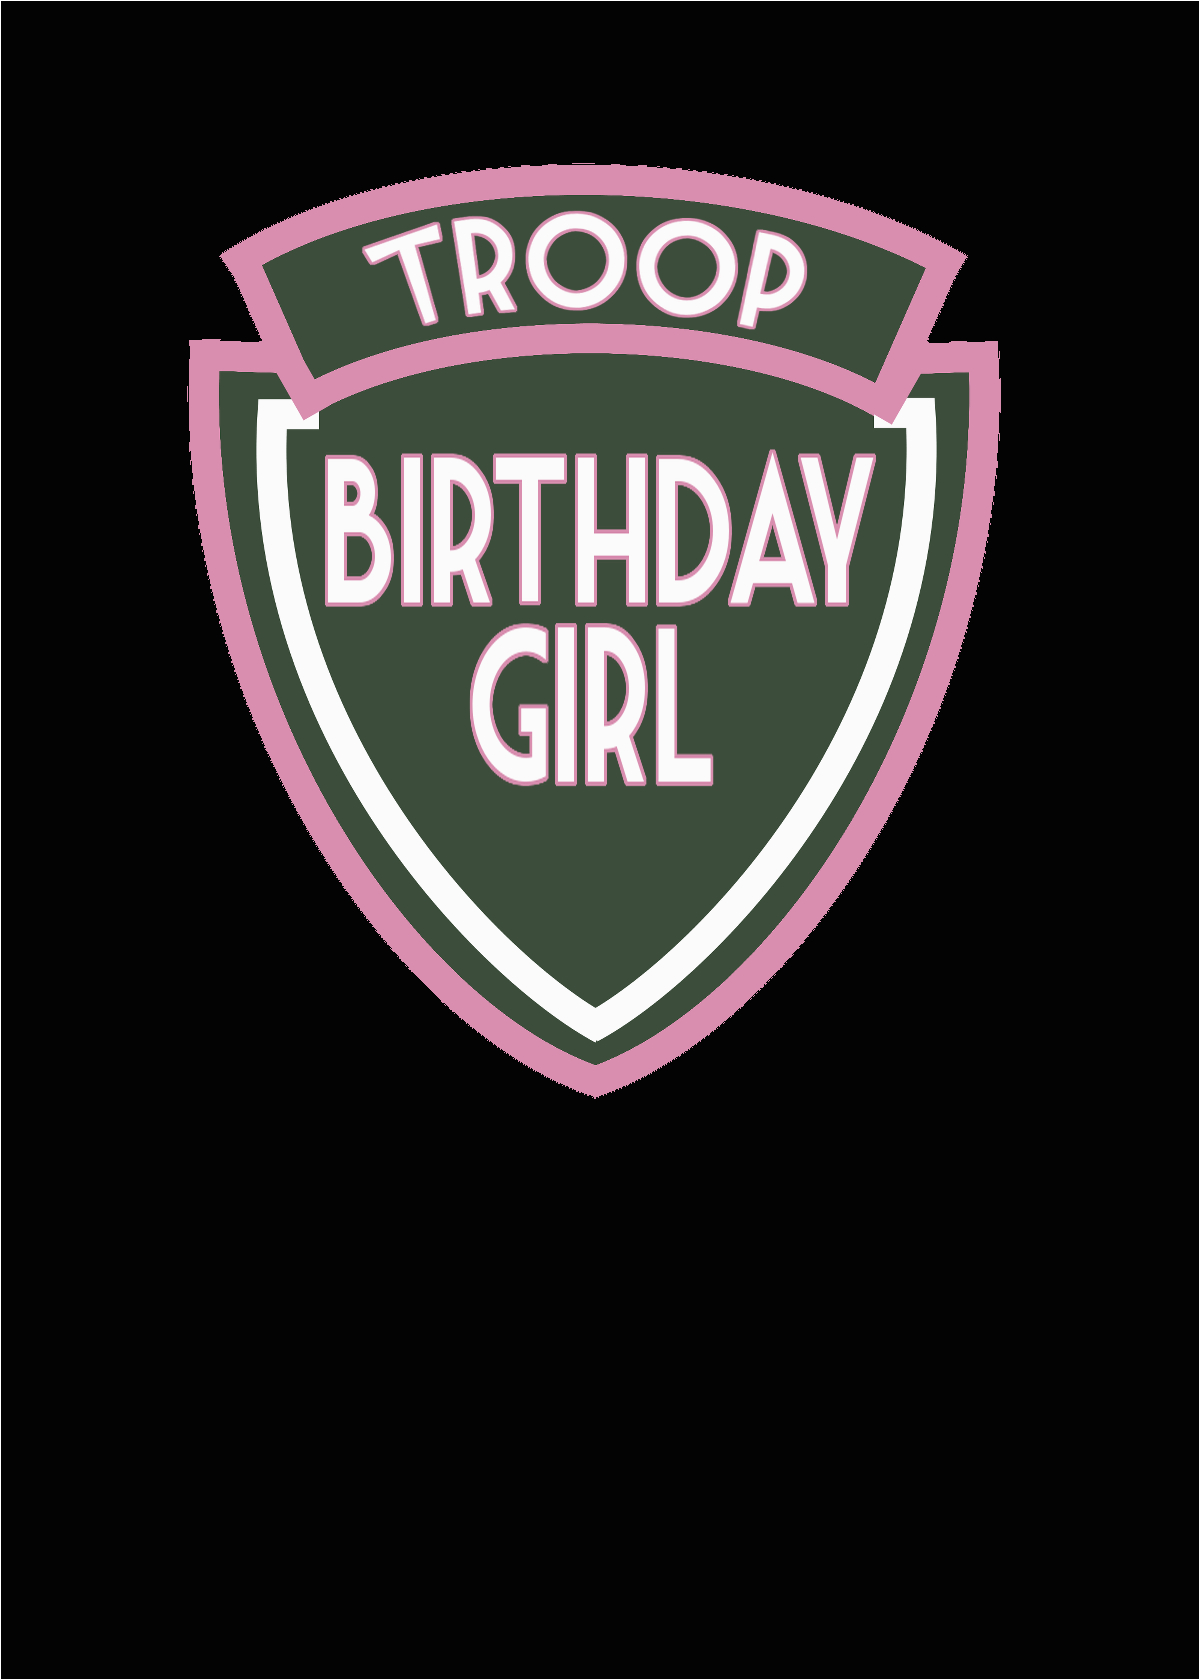 troop birthday girl summer camp party showcomment 1410920561760